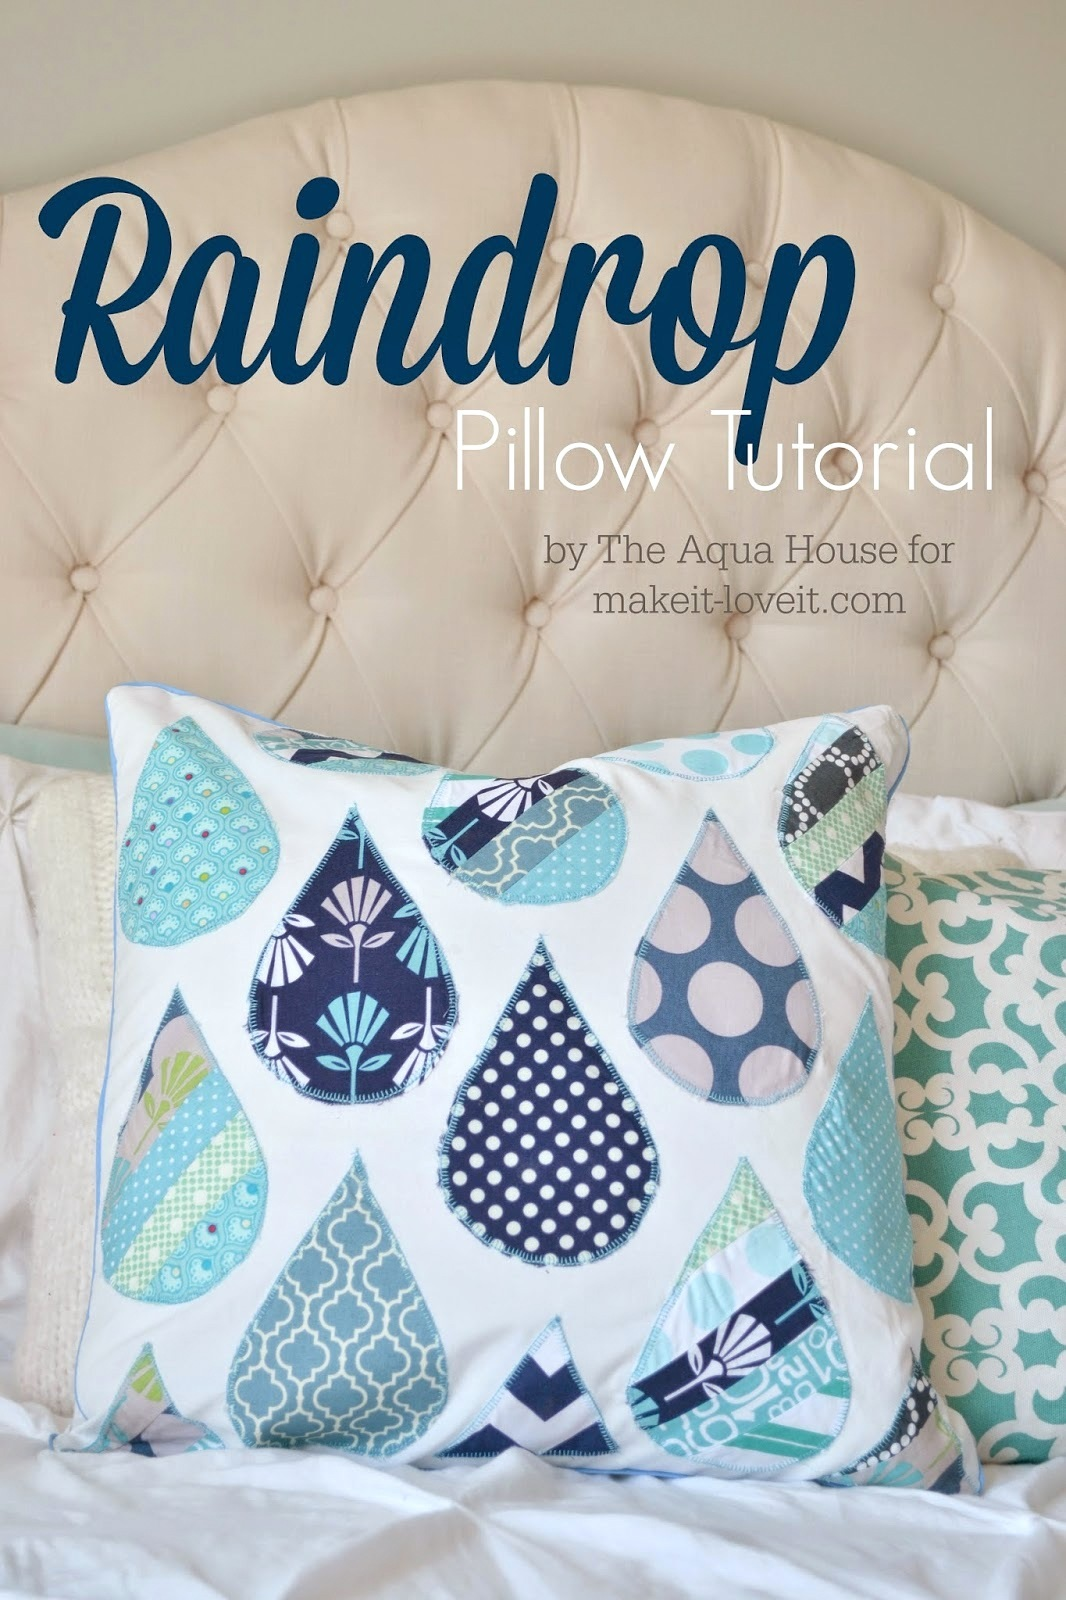 Raindrop Pillow Tutorial...a great project for spring! Make It and Love It